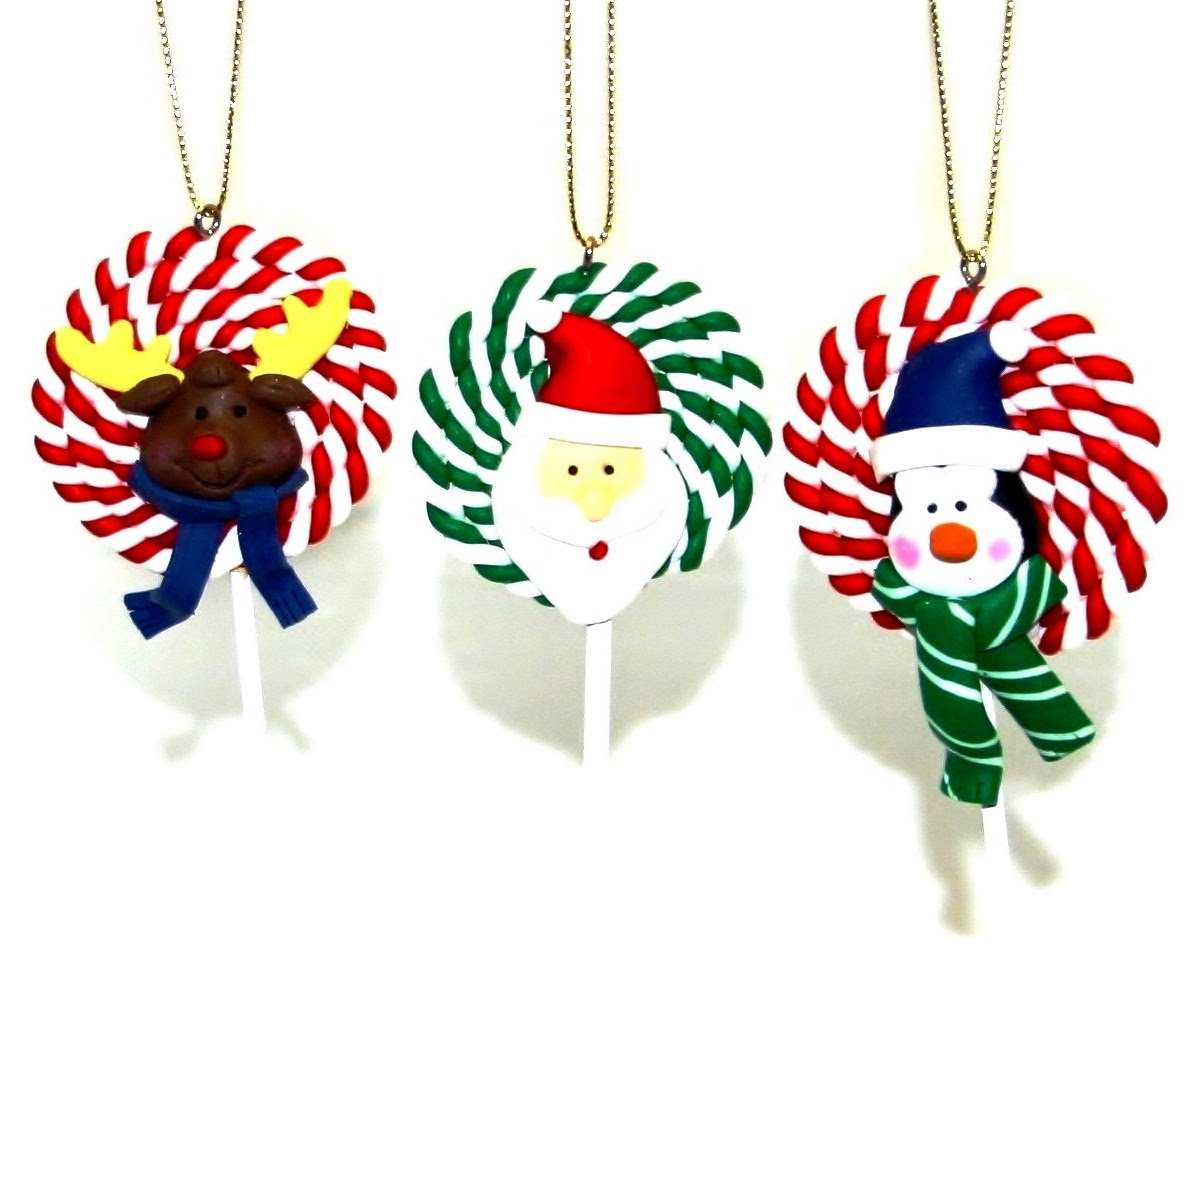 christmas tree decorations lollipops - Lollipop Christmas Decorations